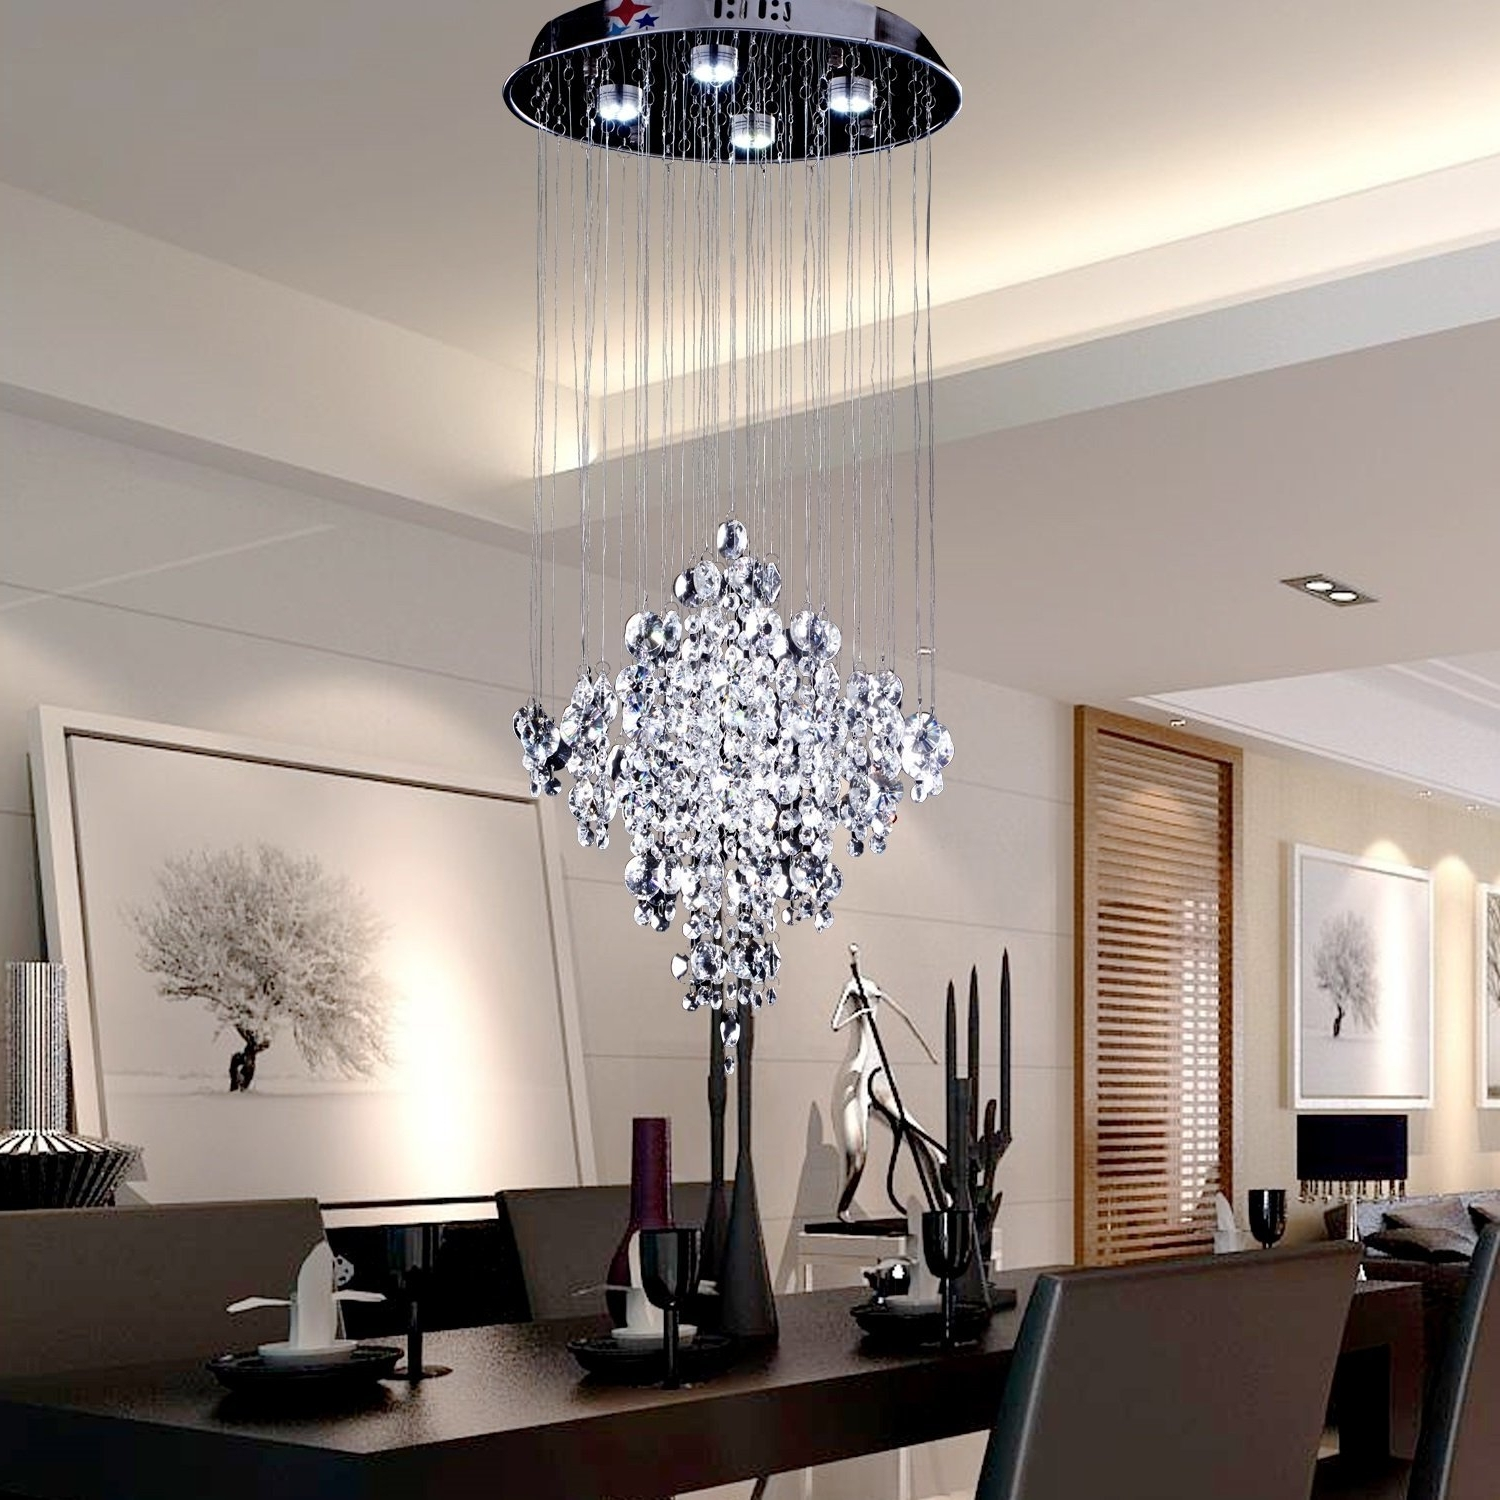 Chandeliers Design : Wonderful Crystal Contemporary Chandelier With Regard To Latest Contemporary Chandeliers (View 10 of 15)